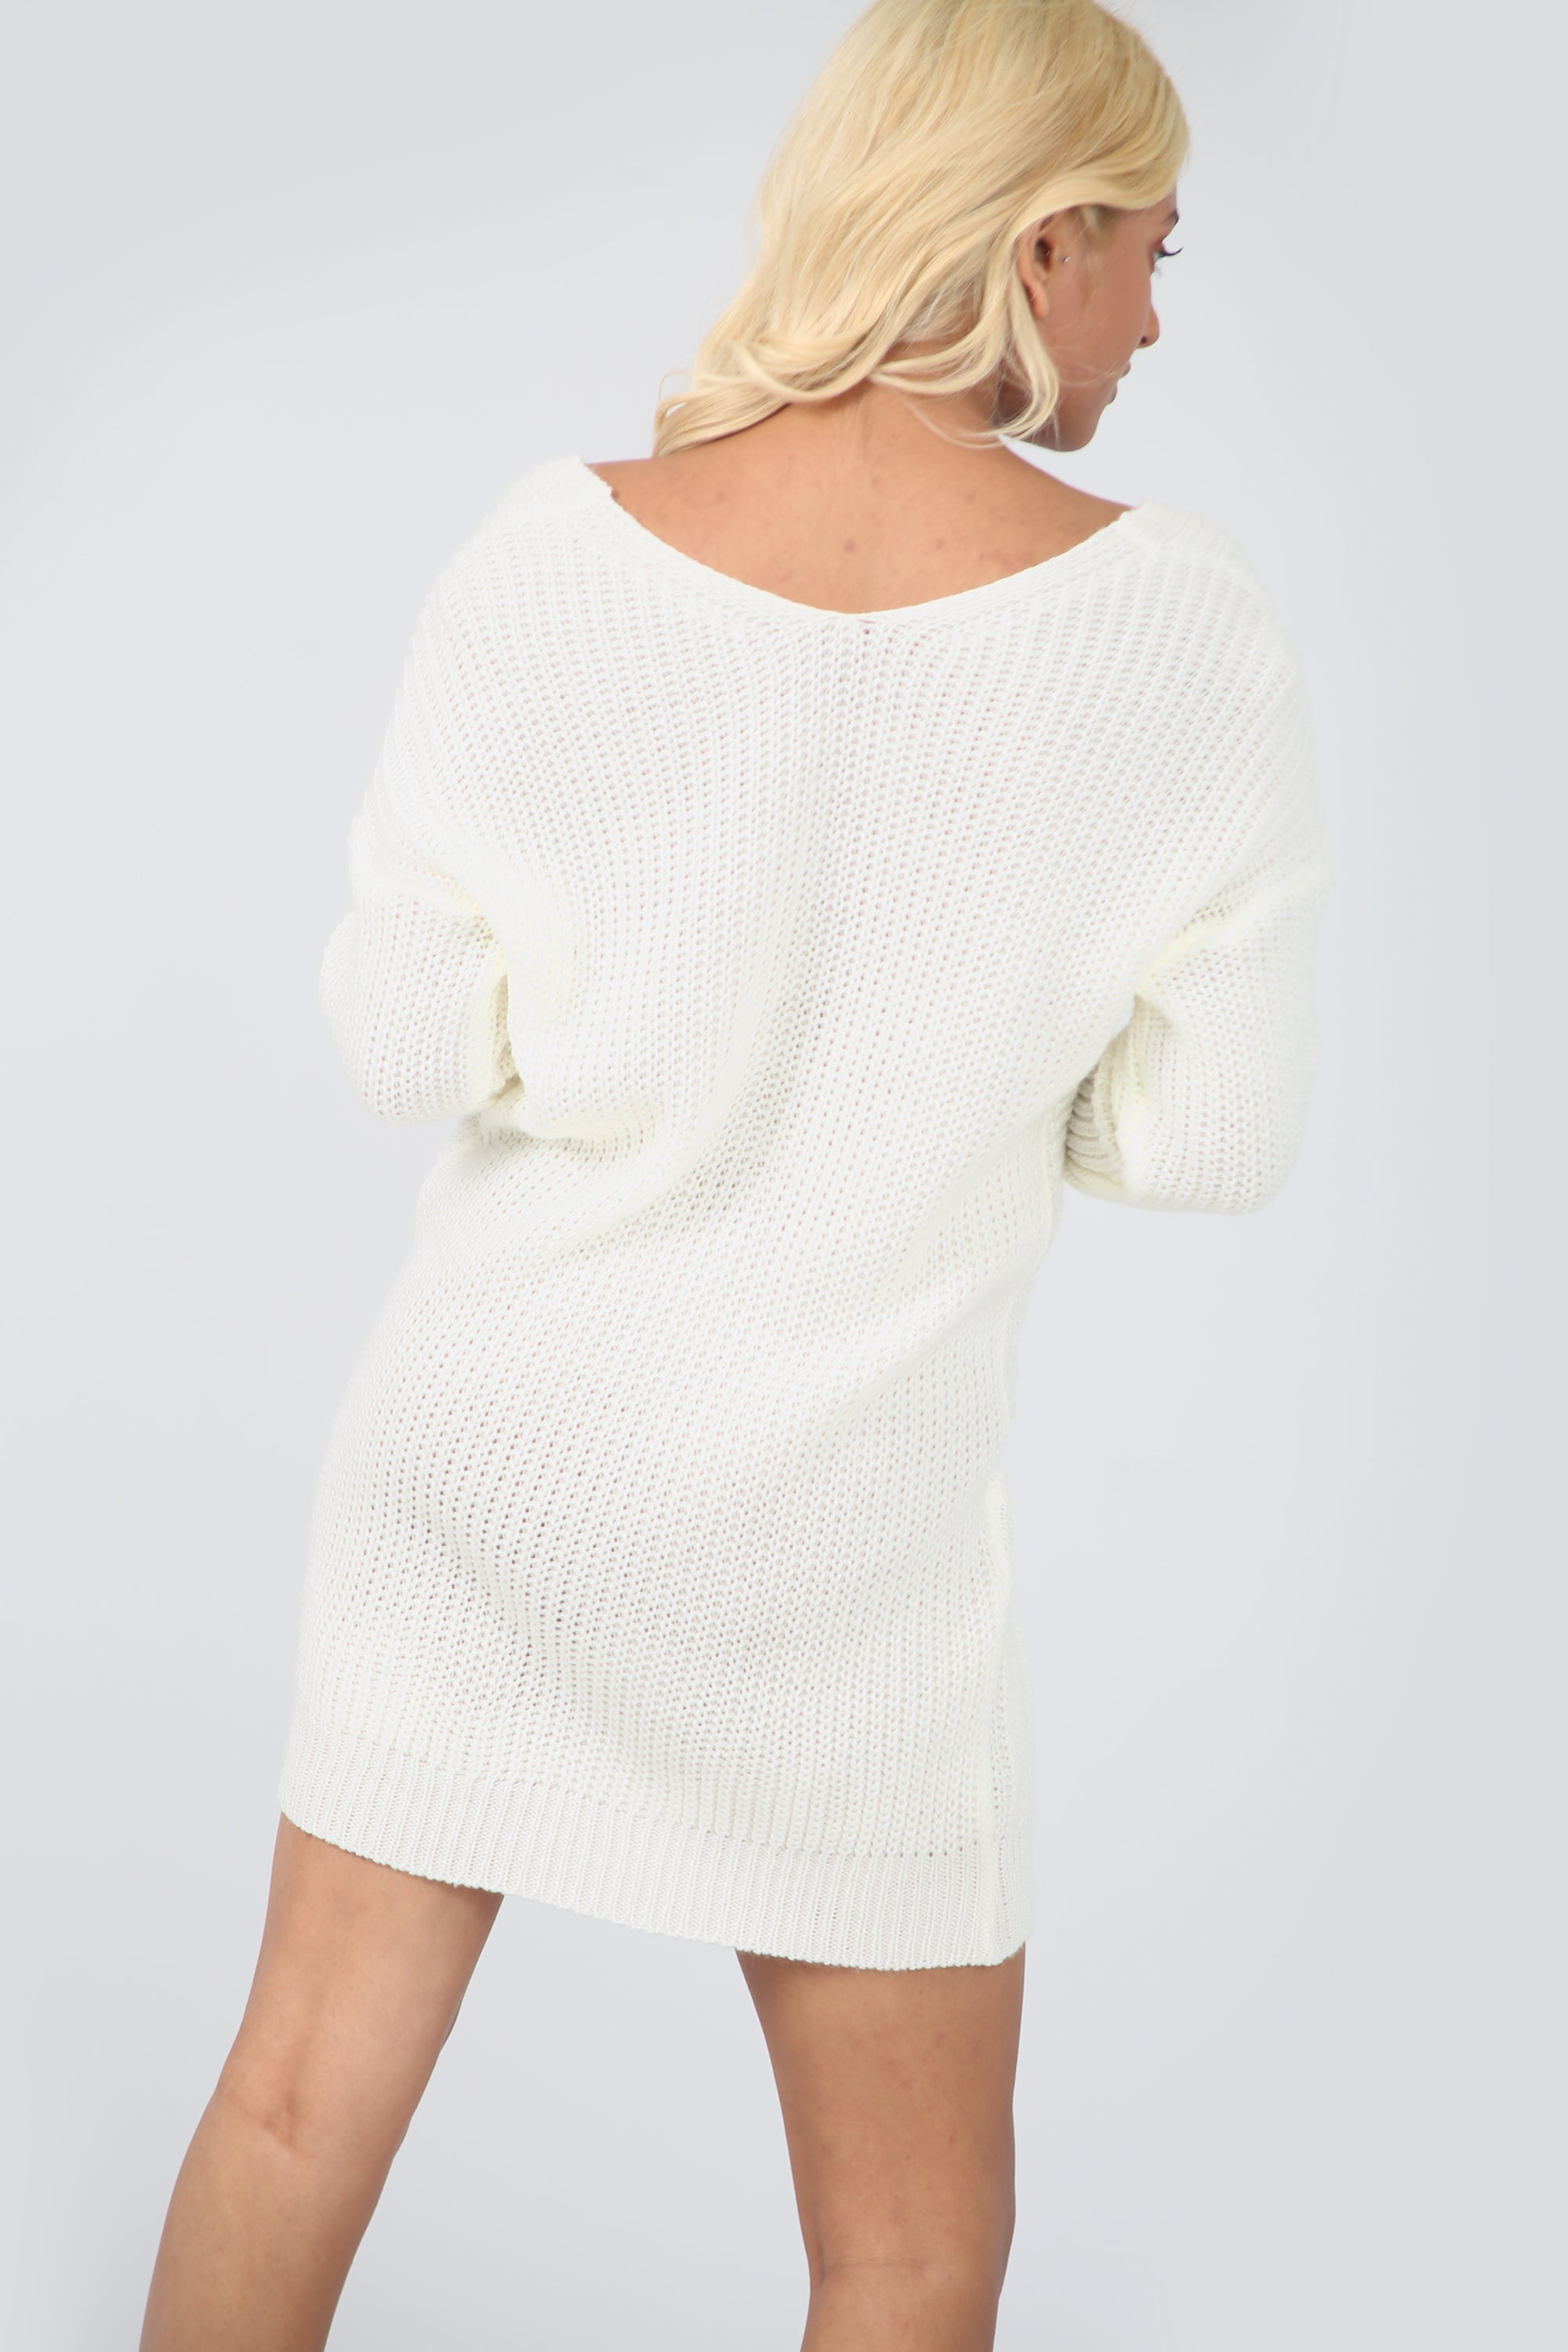 Twist Front Cream Oversize Knitted Jumper Dress - bejealous-com